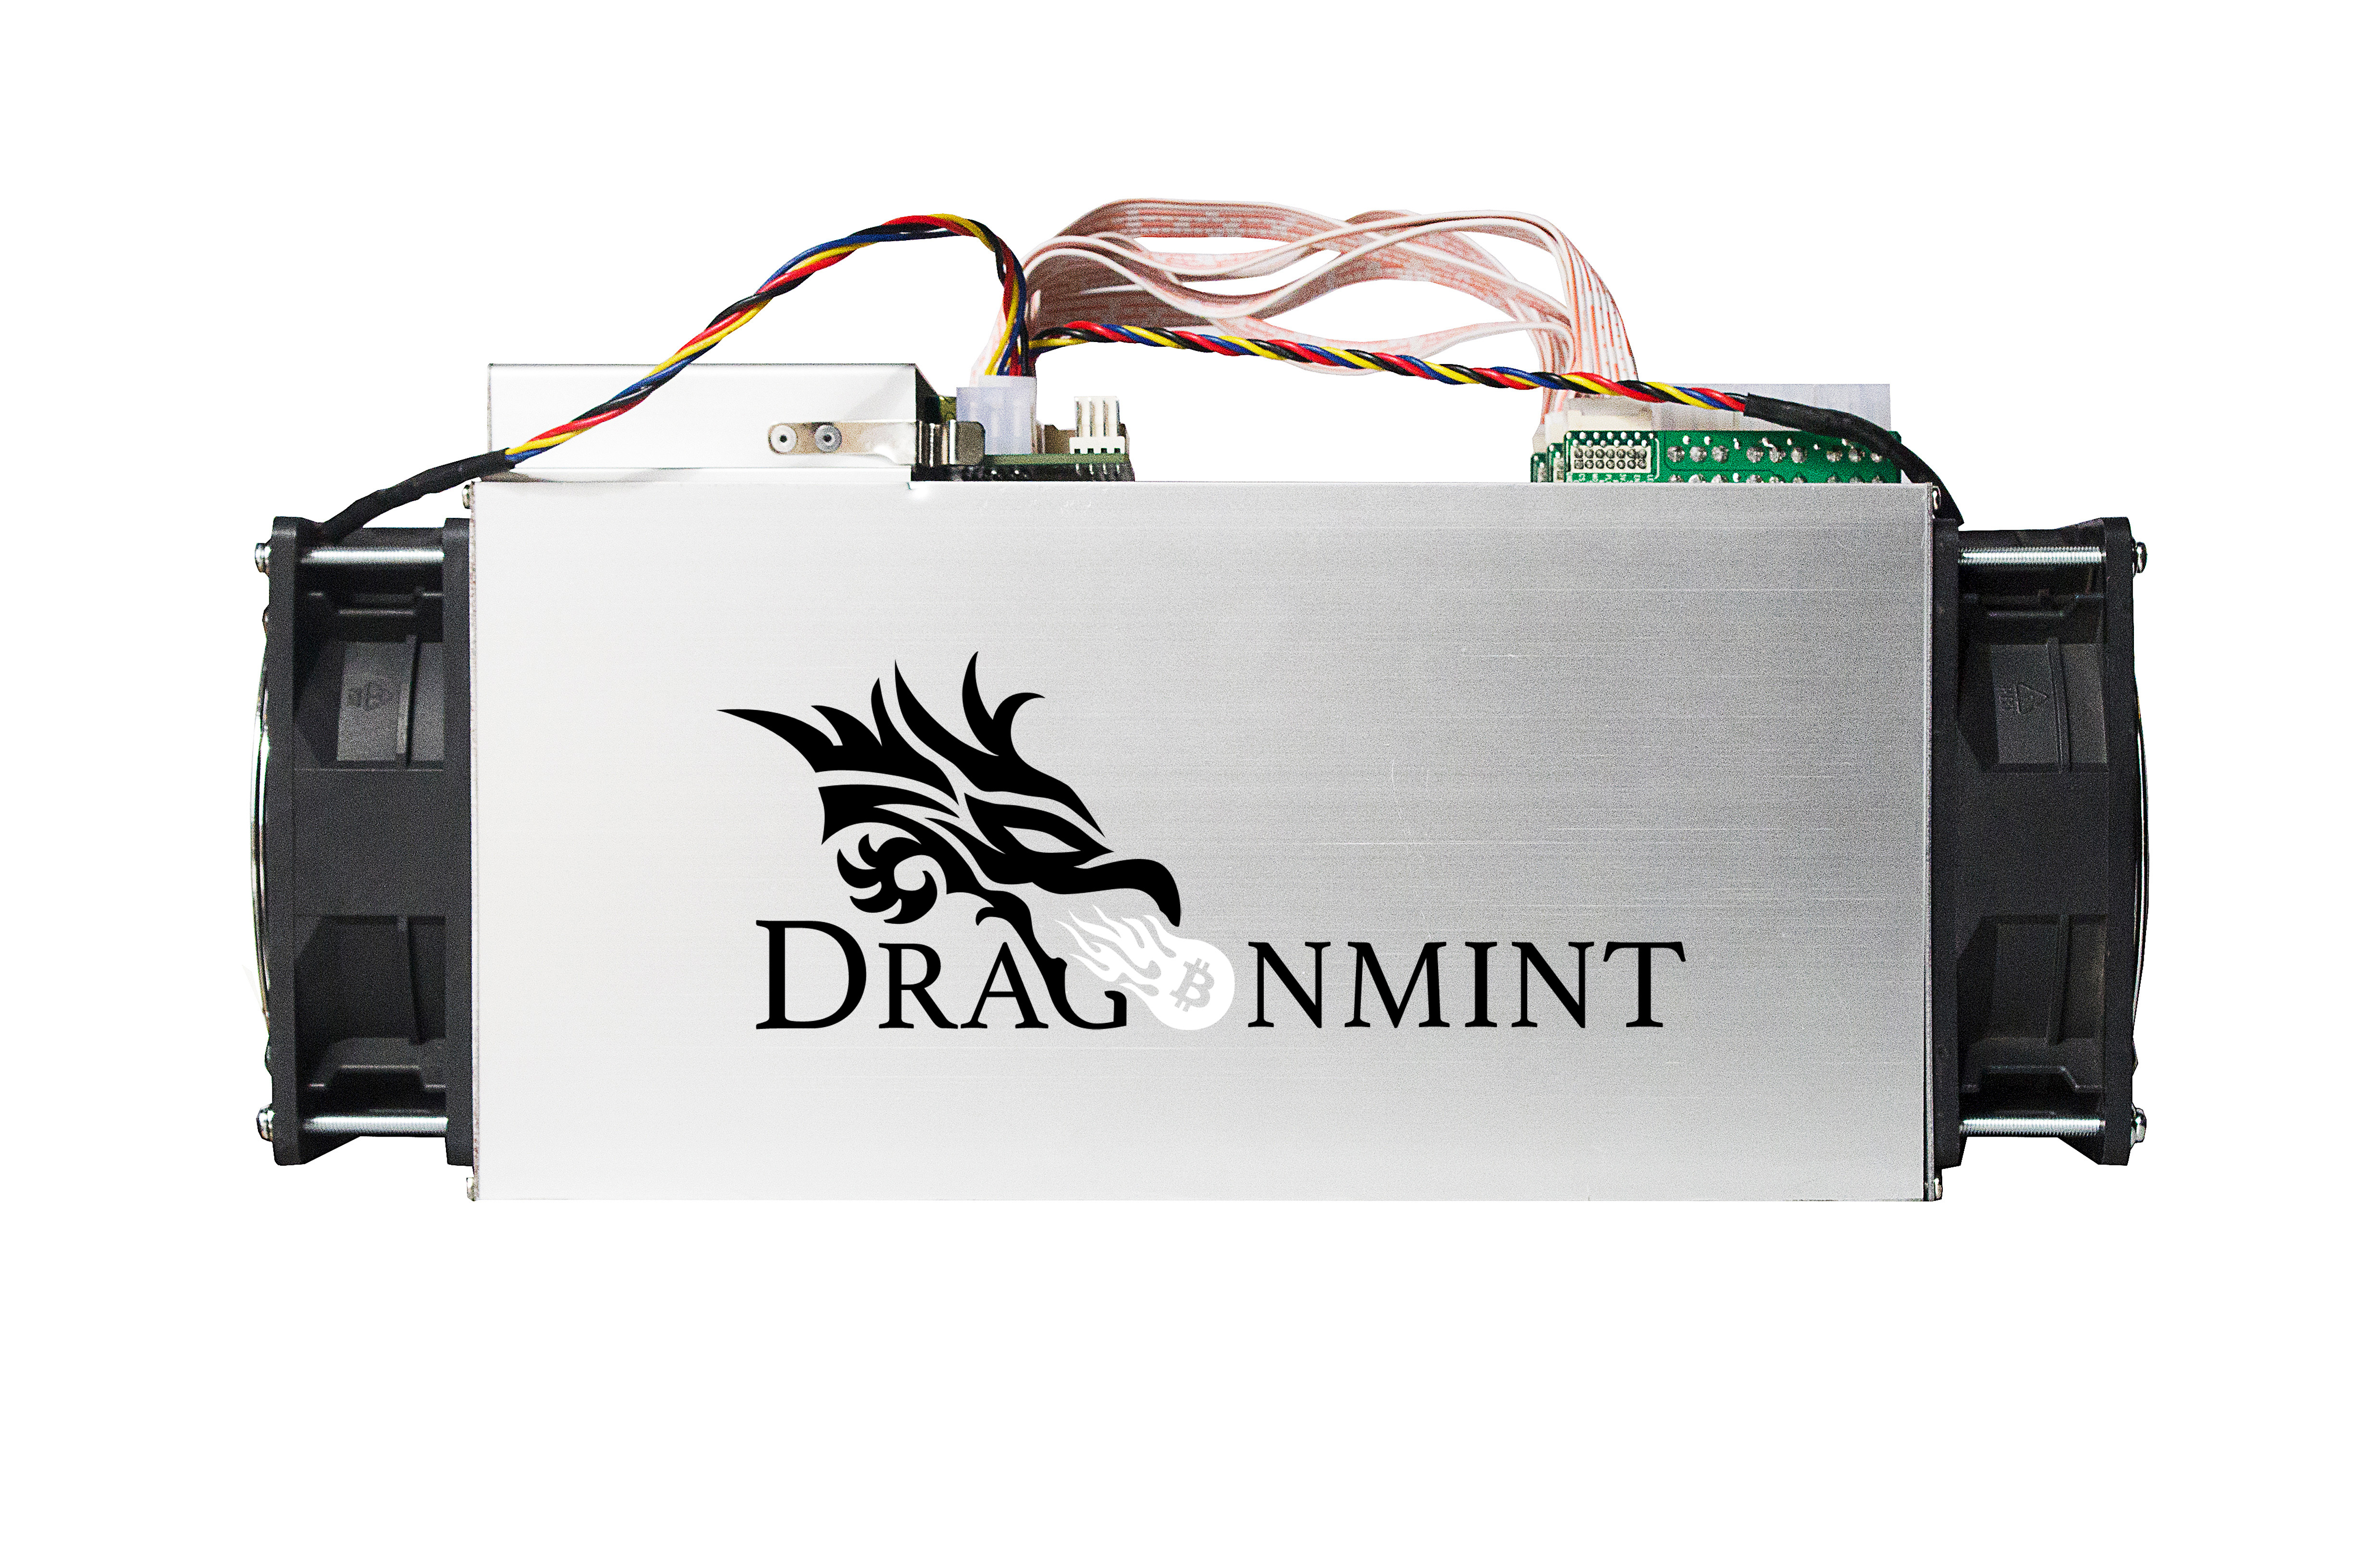 BITCOIN, Ethereum & DASH industrial mining equipment